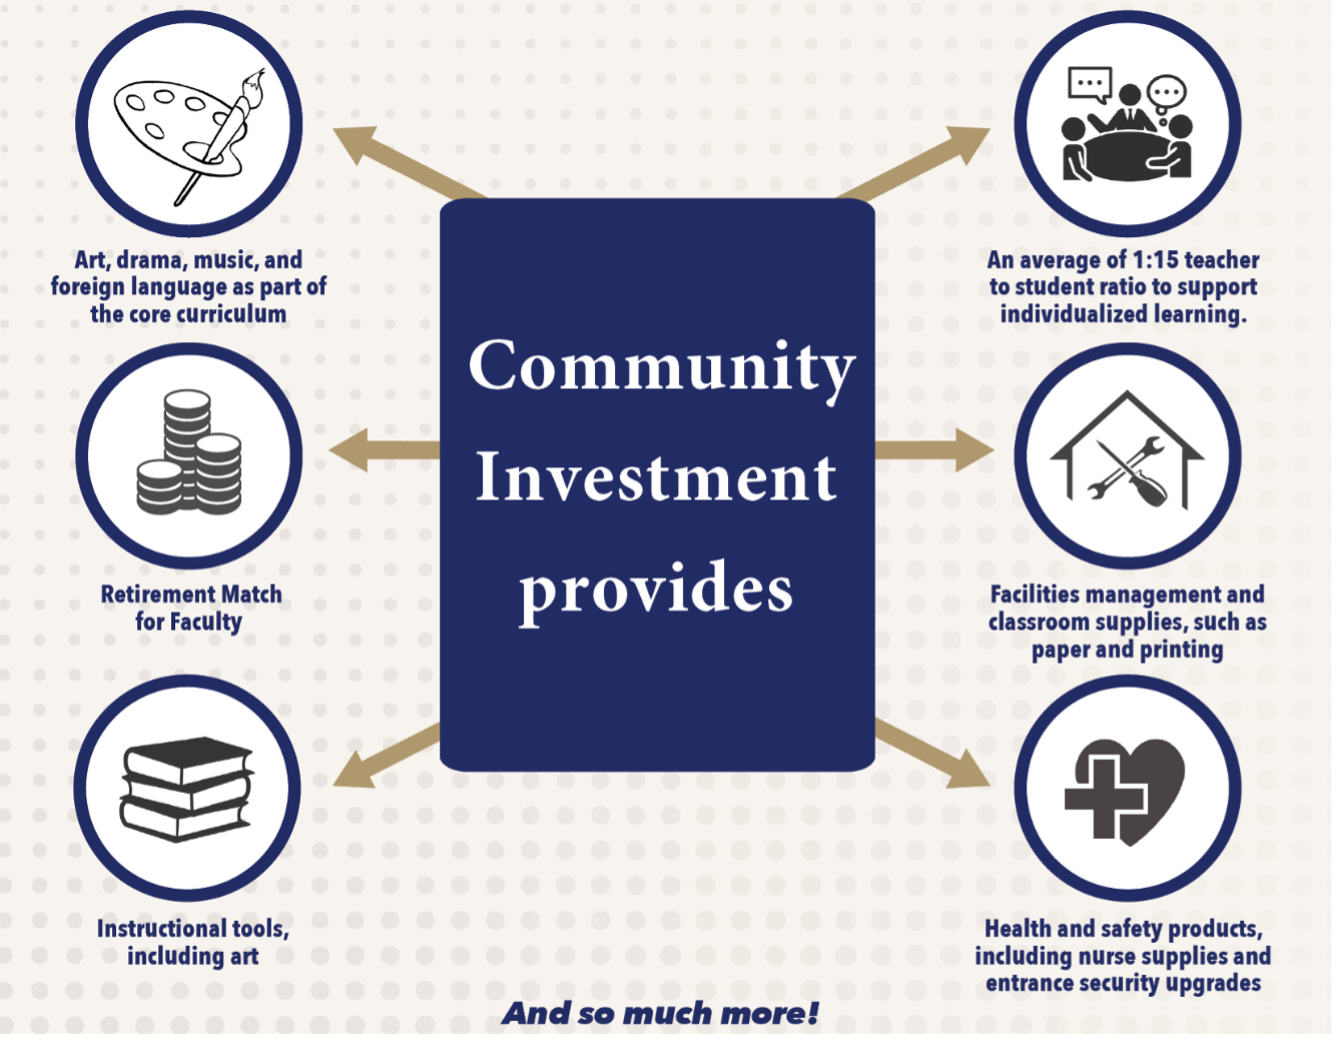 Community Investment provides services